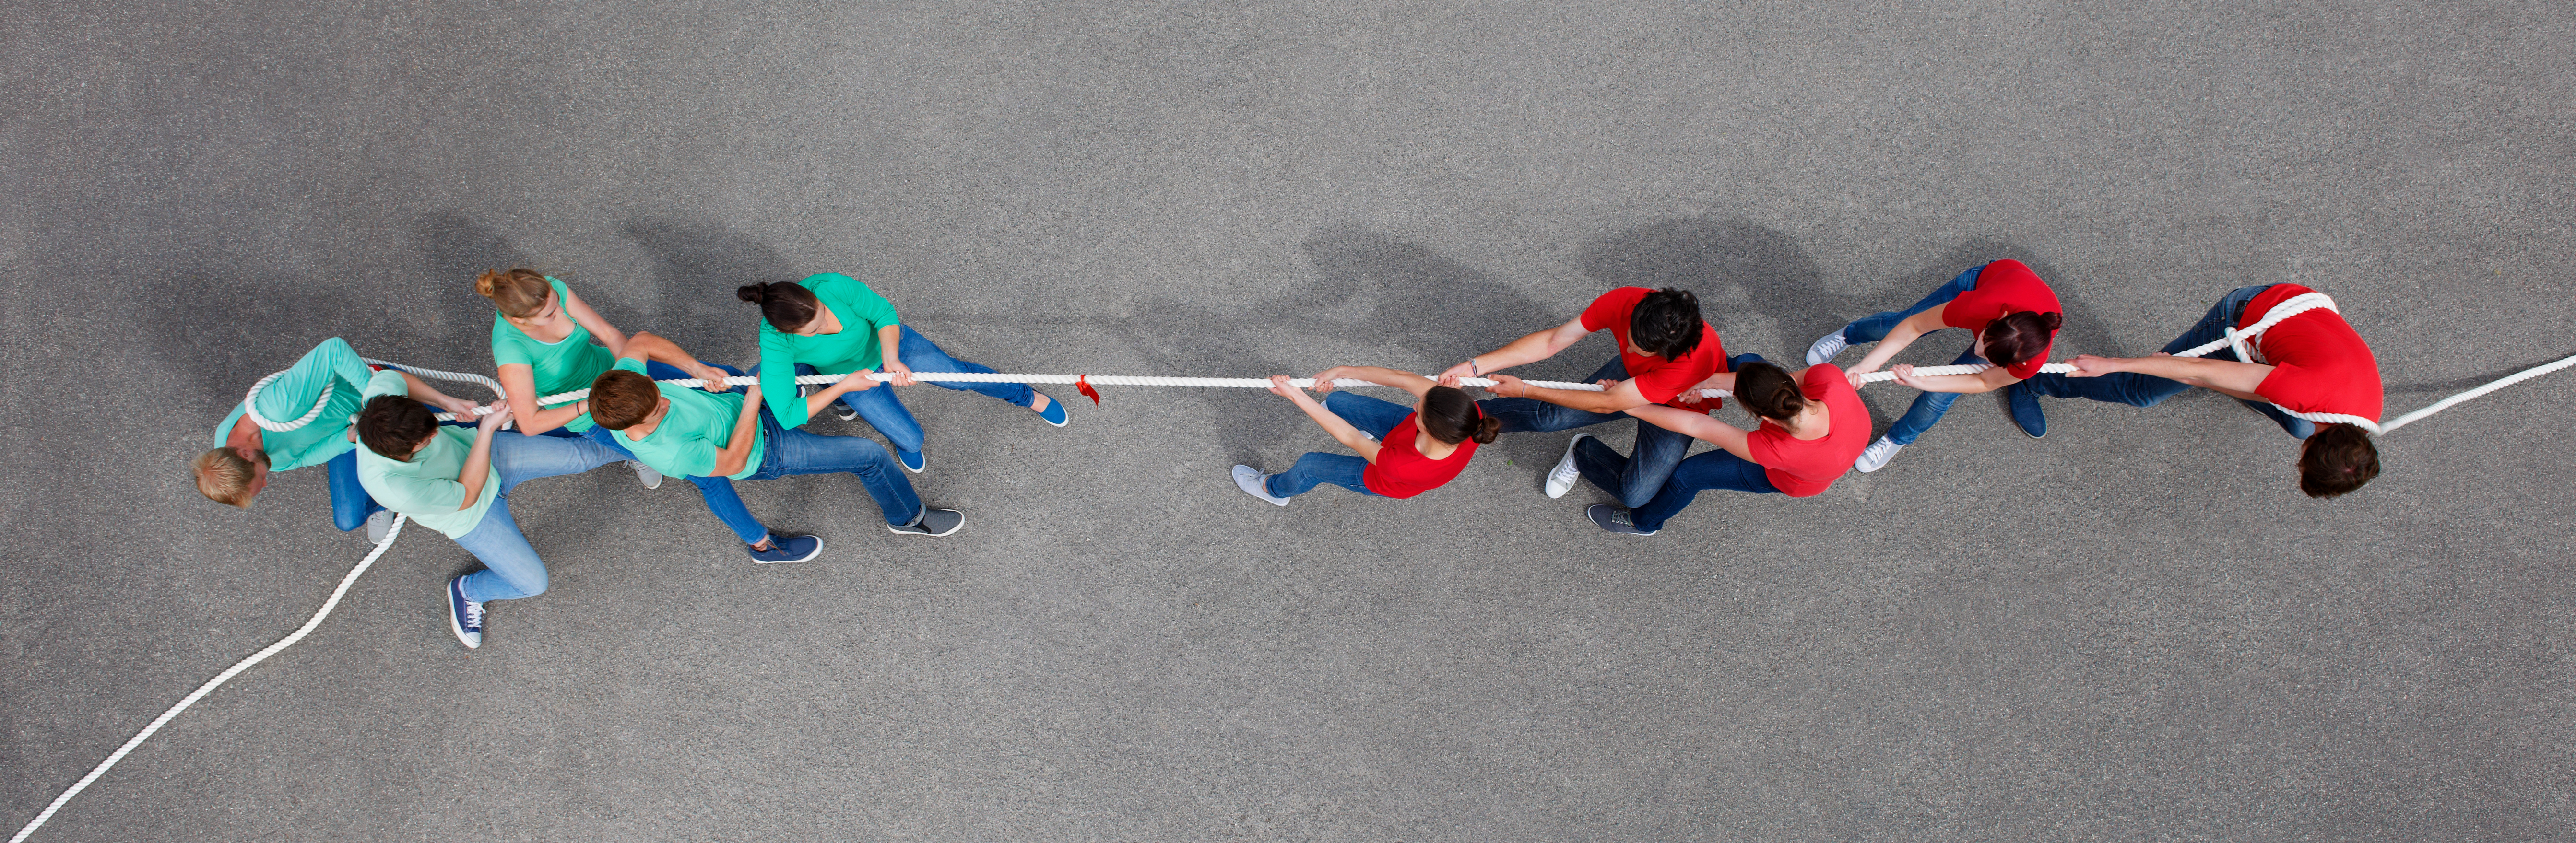 two opposing teams, one in blue t-shirts and the other in red t-shirts playing tug of war